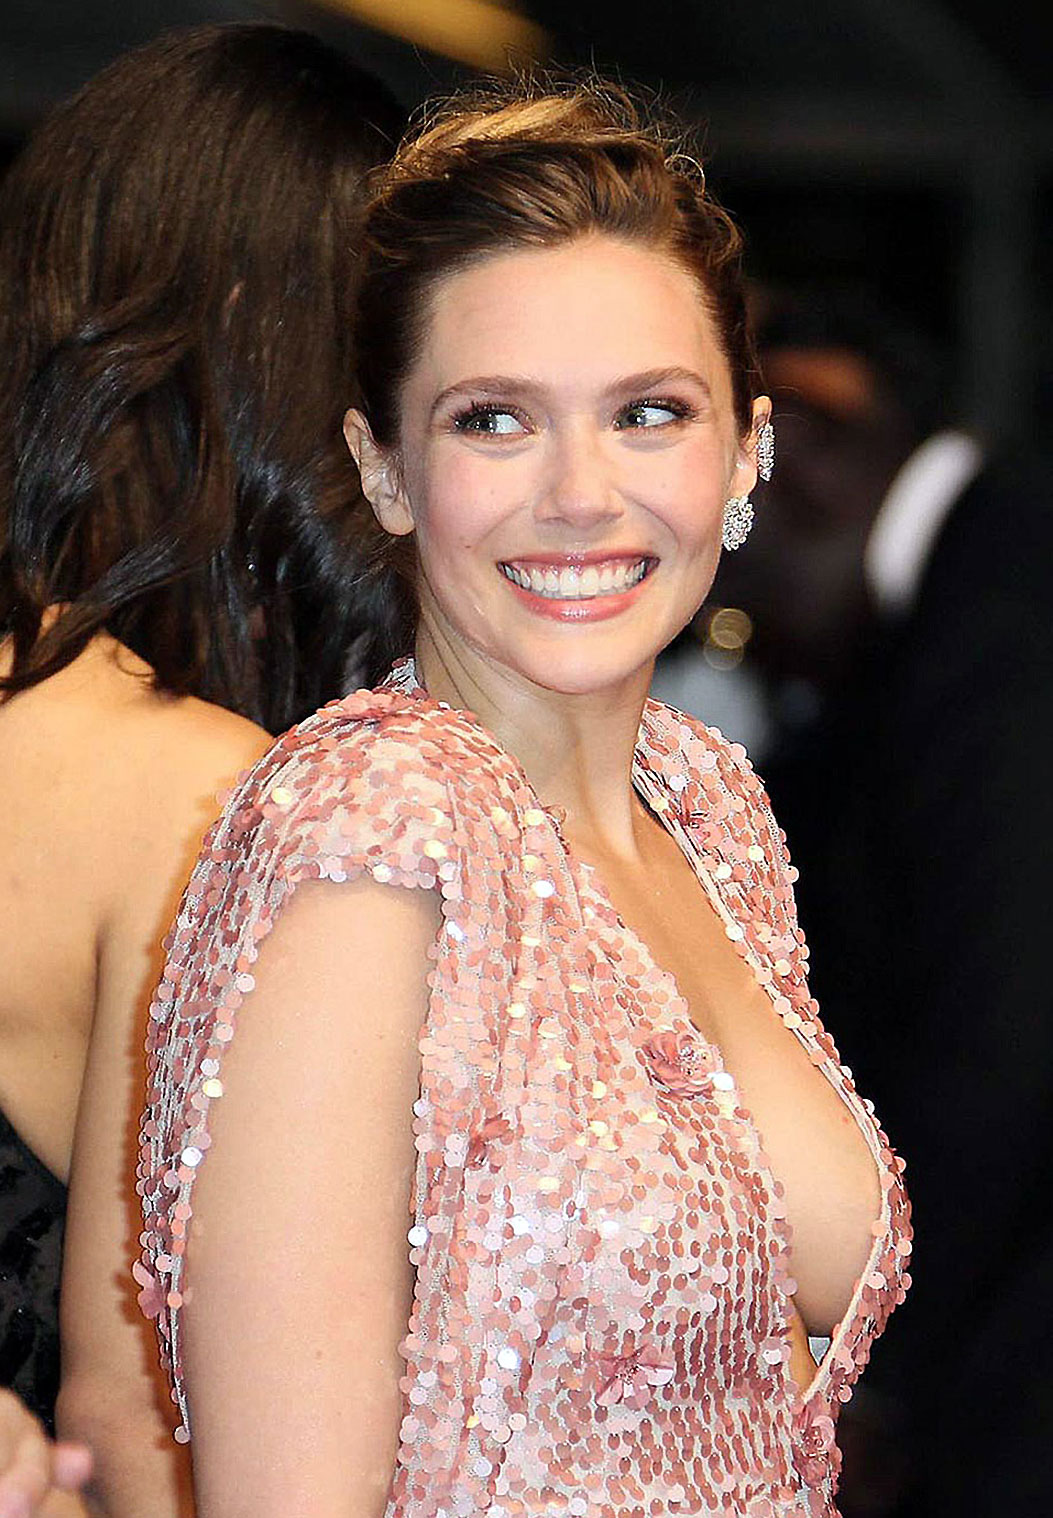 Elizabeth Olsen Nude And Hot Pics That Will Make You Hard